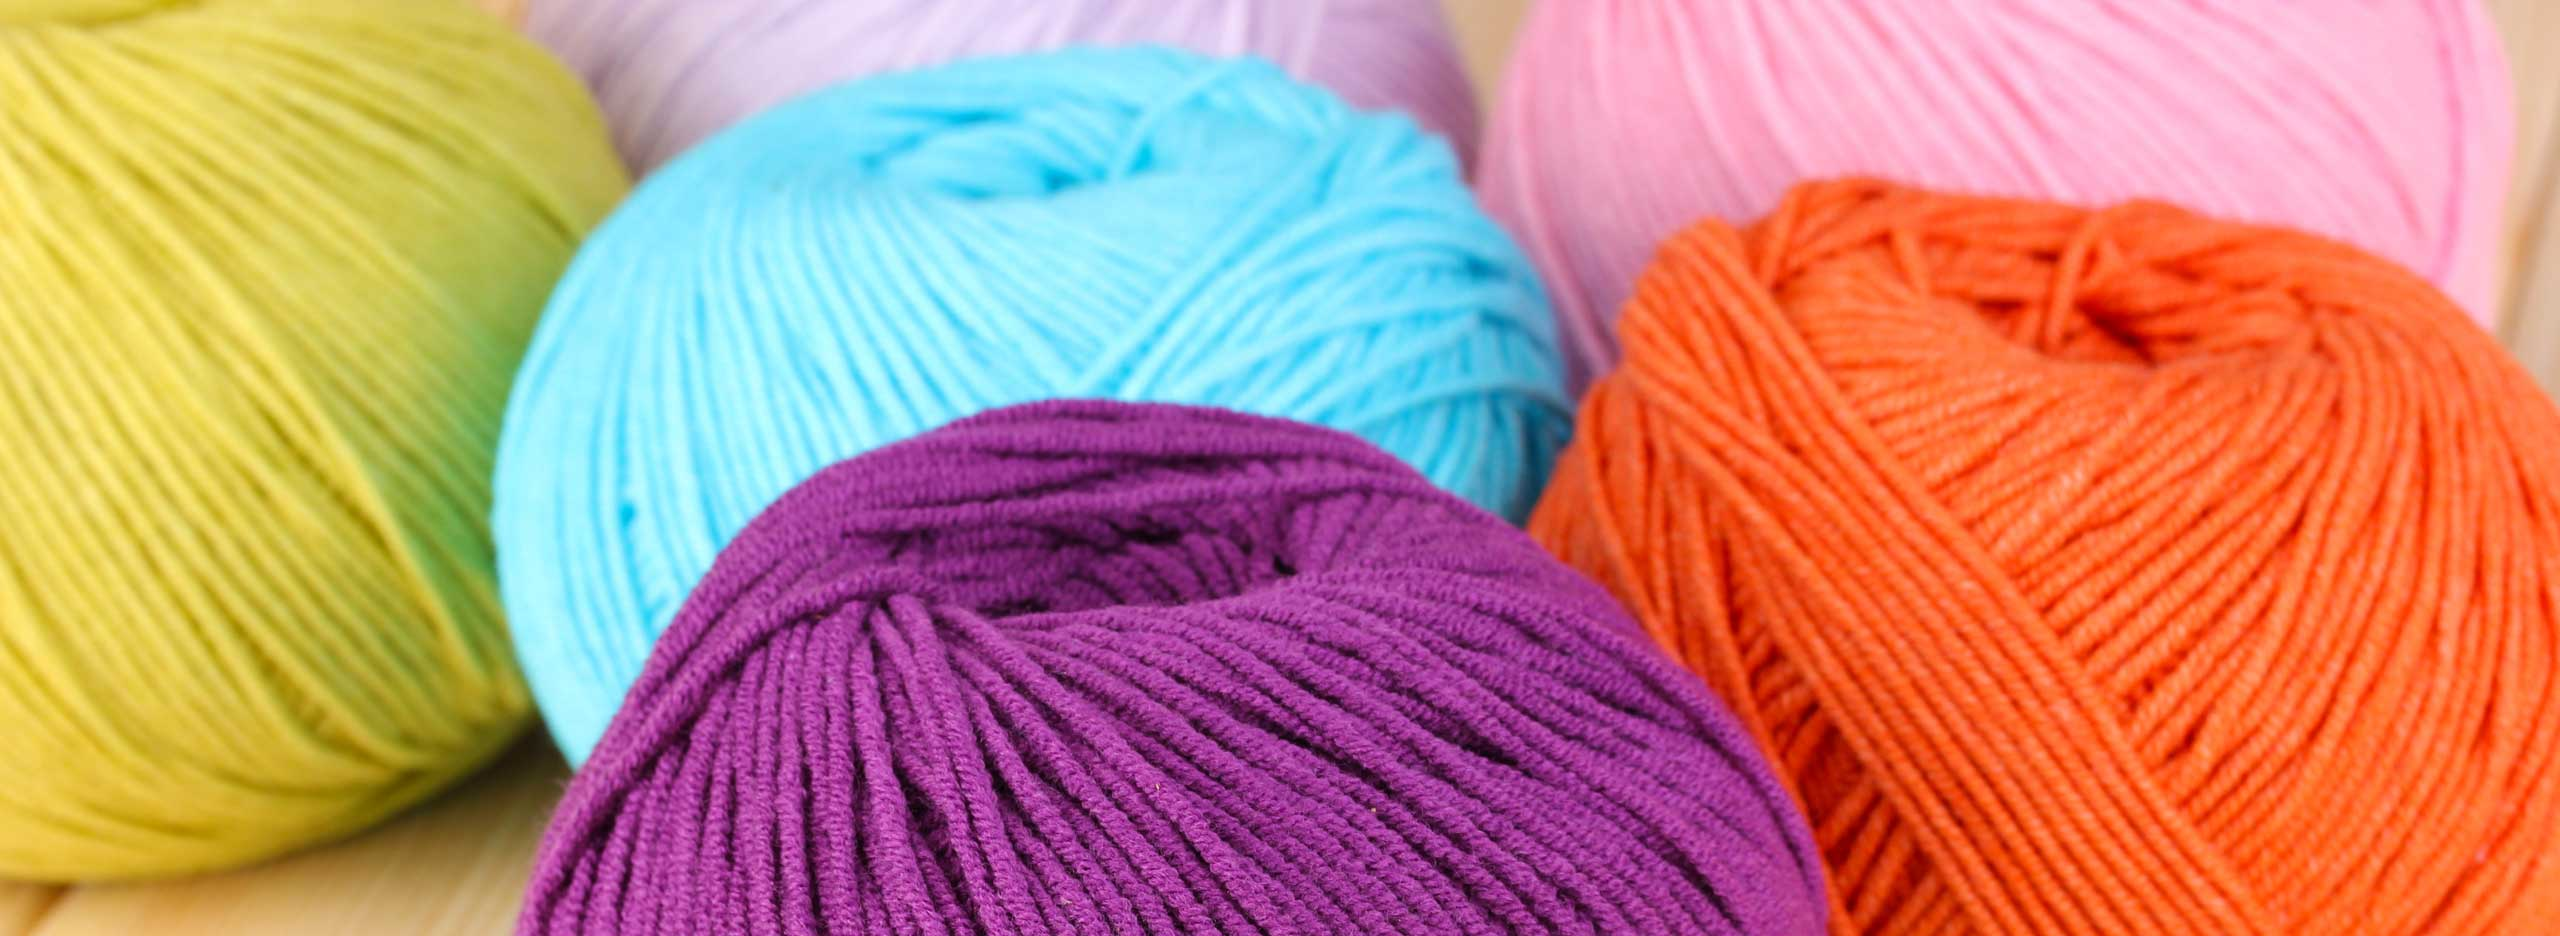 Knitting, Free Knitting Patterns, Knitting Yarn, Knitting ...